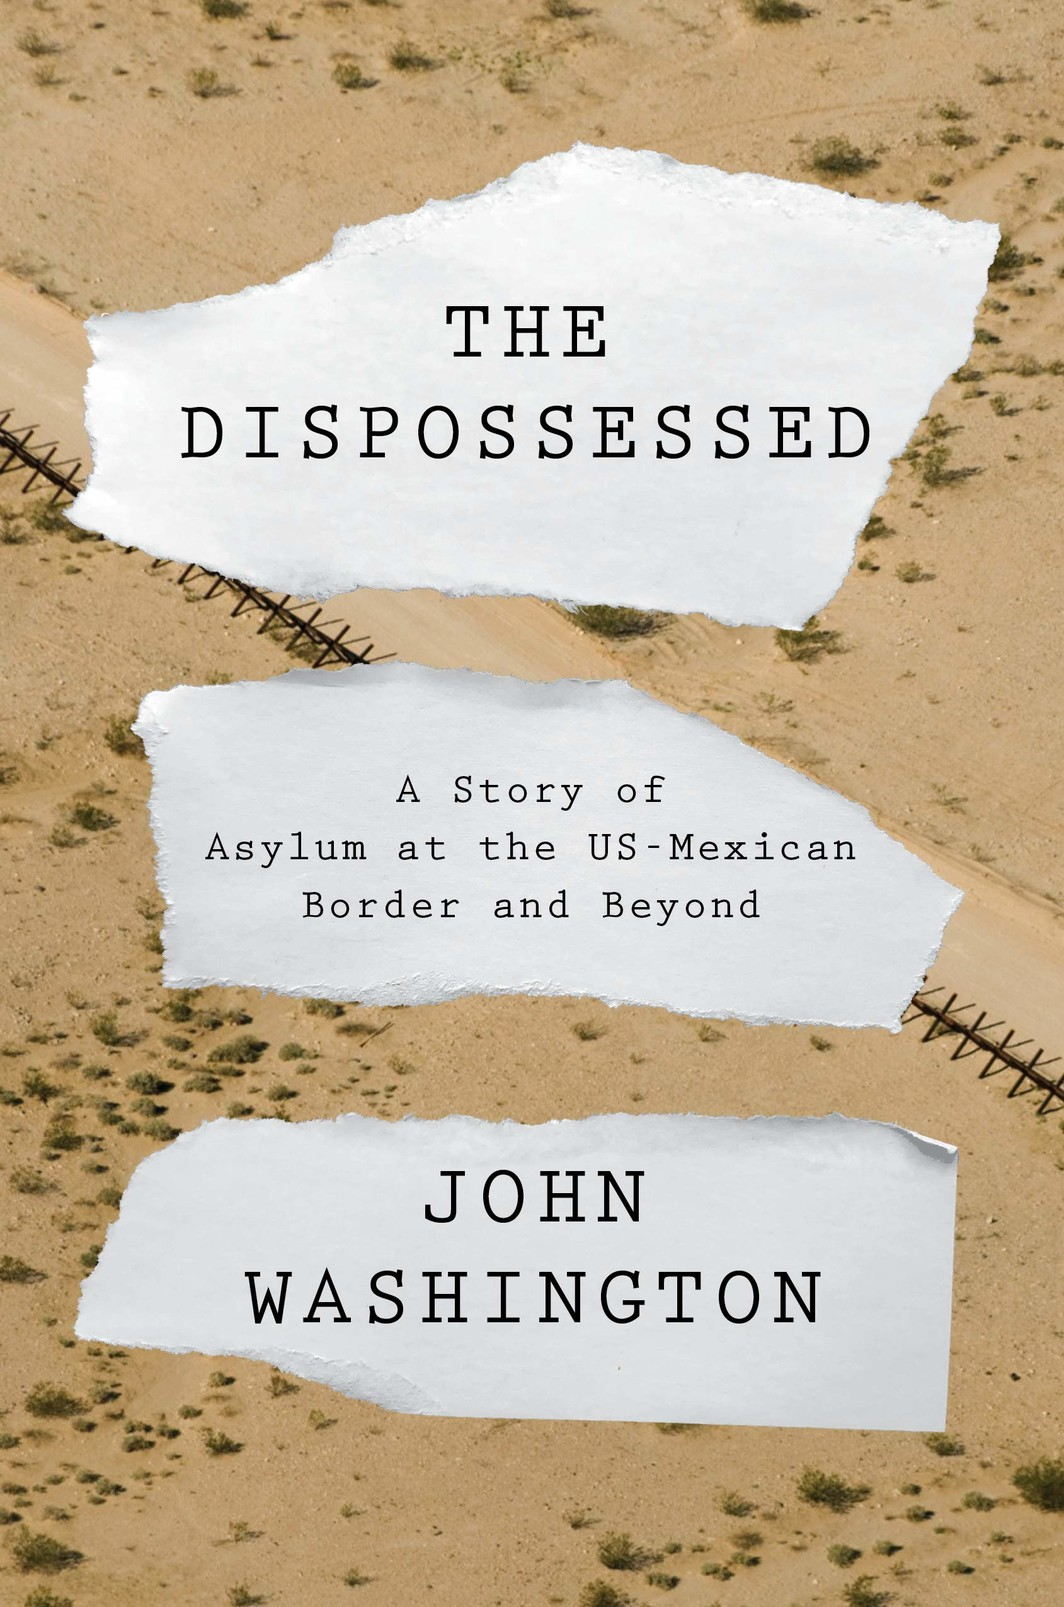 The cover of The Dispossessed: A Story of Asylum and the US-Mexican Border and Beyond